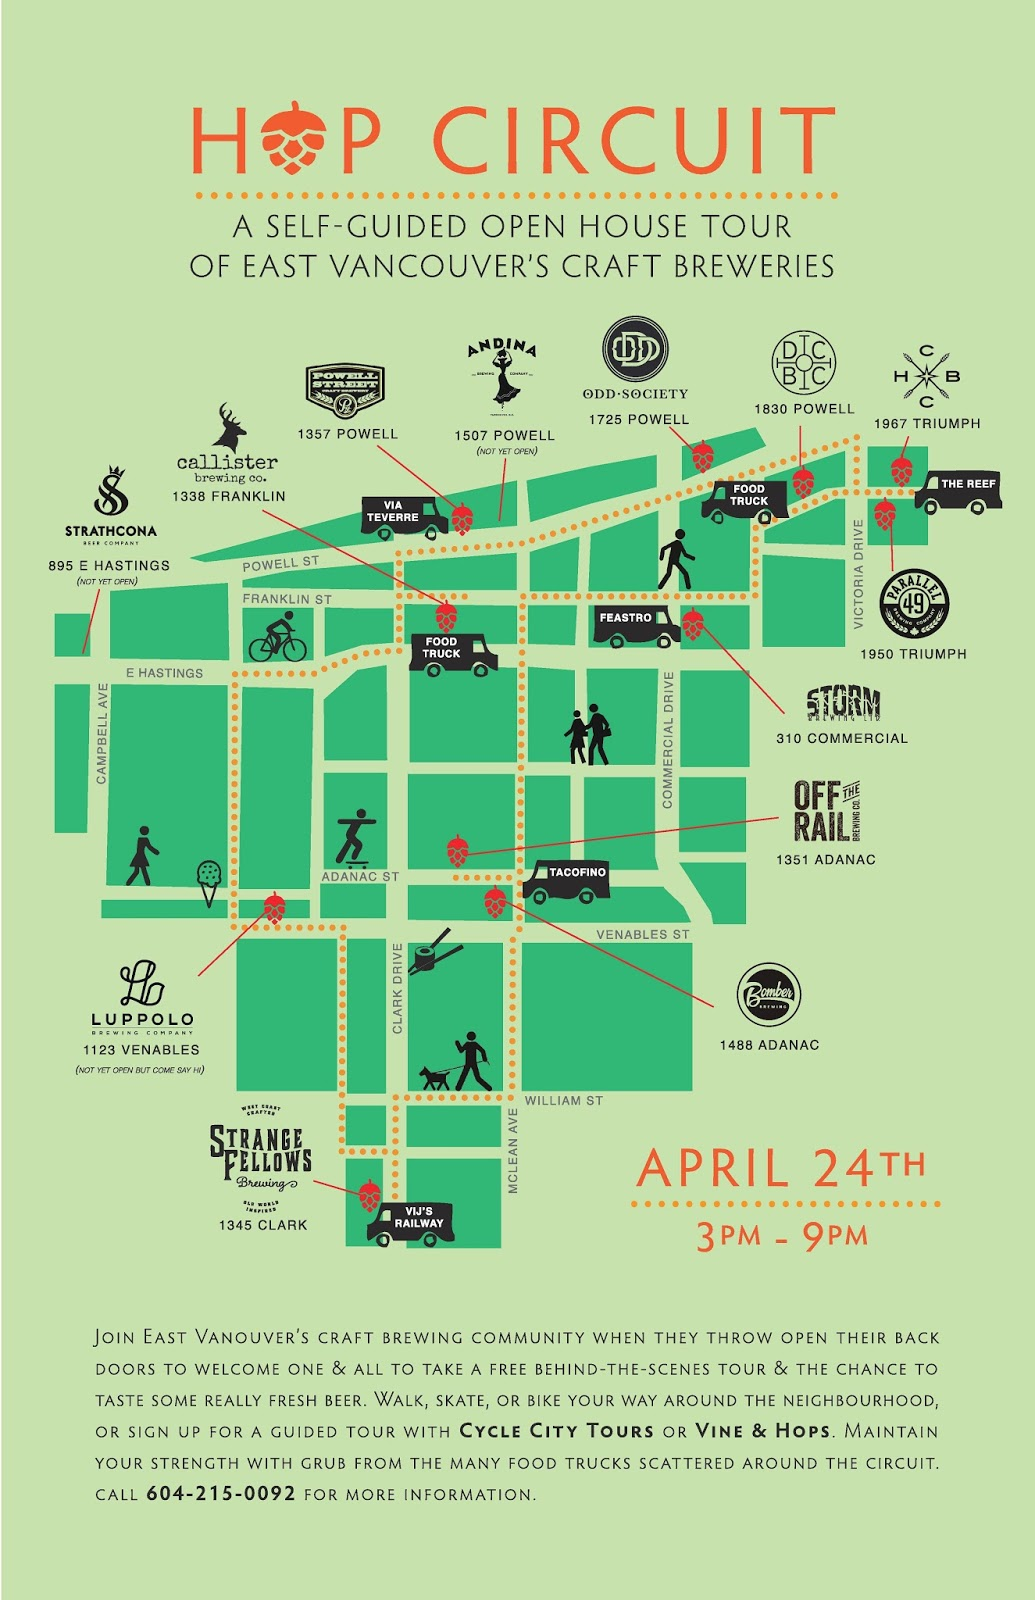 Hop Circuit Wiring Diagram For Keg Beer From 3pm To 9pm On Sunday April 24th The Eleven Existing And 1 Soon Be Open Breweries Distilleries Of East Vancouver Are Swinging Their Brewhouse